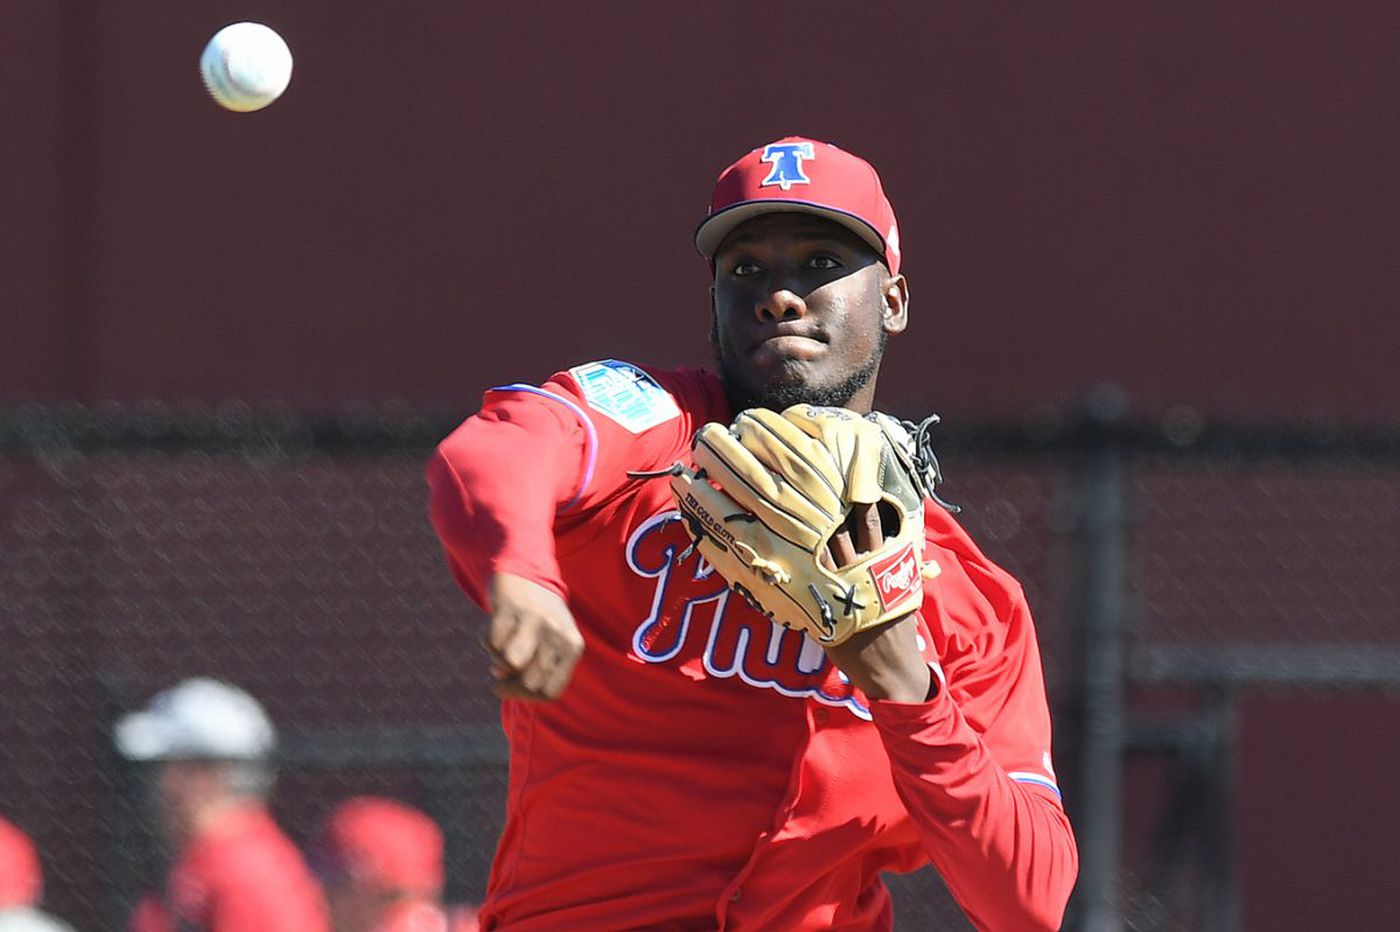 Minor League report: Good debut for De Los Santos, the pitcher acquired in Freddy Galvis' deal